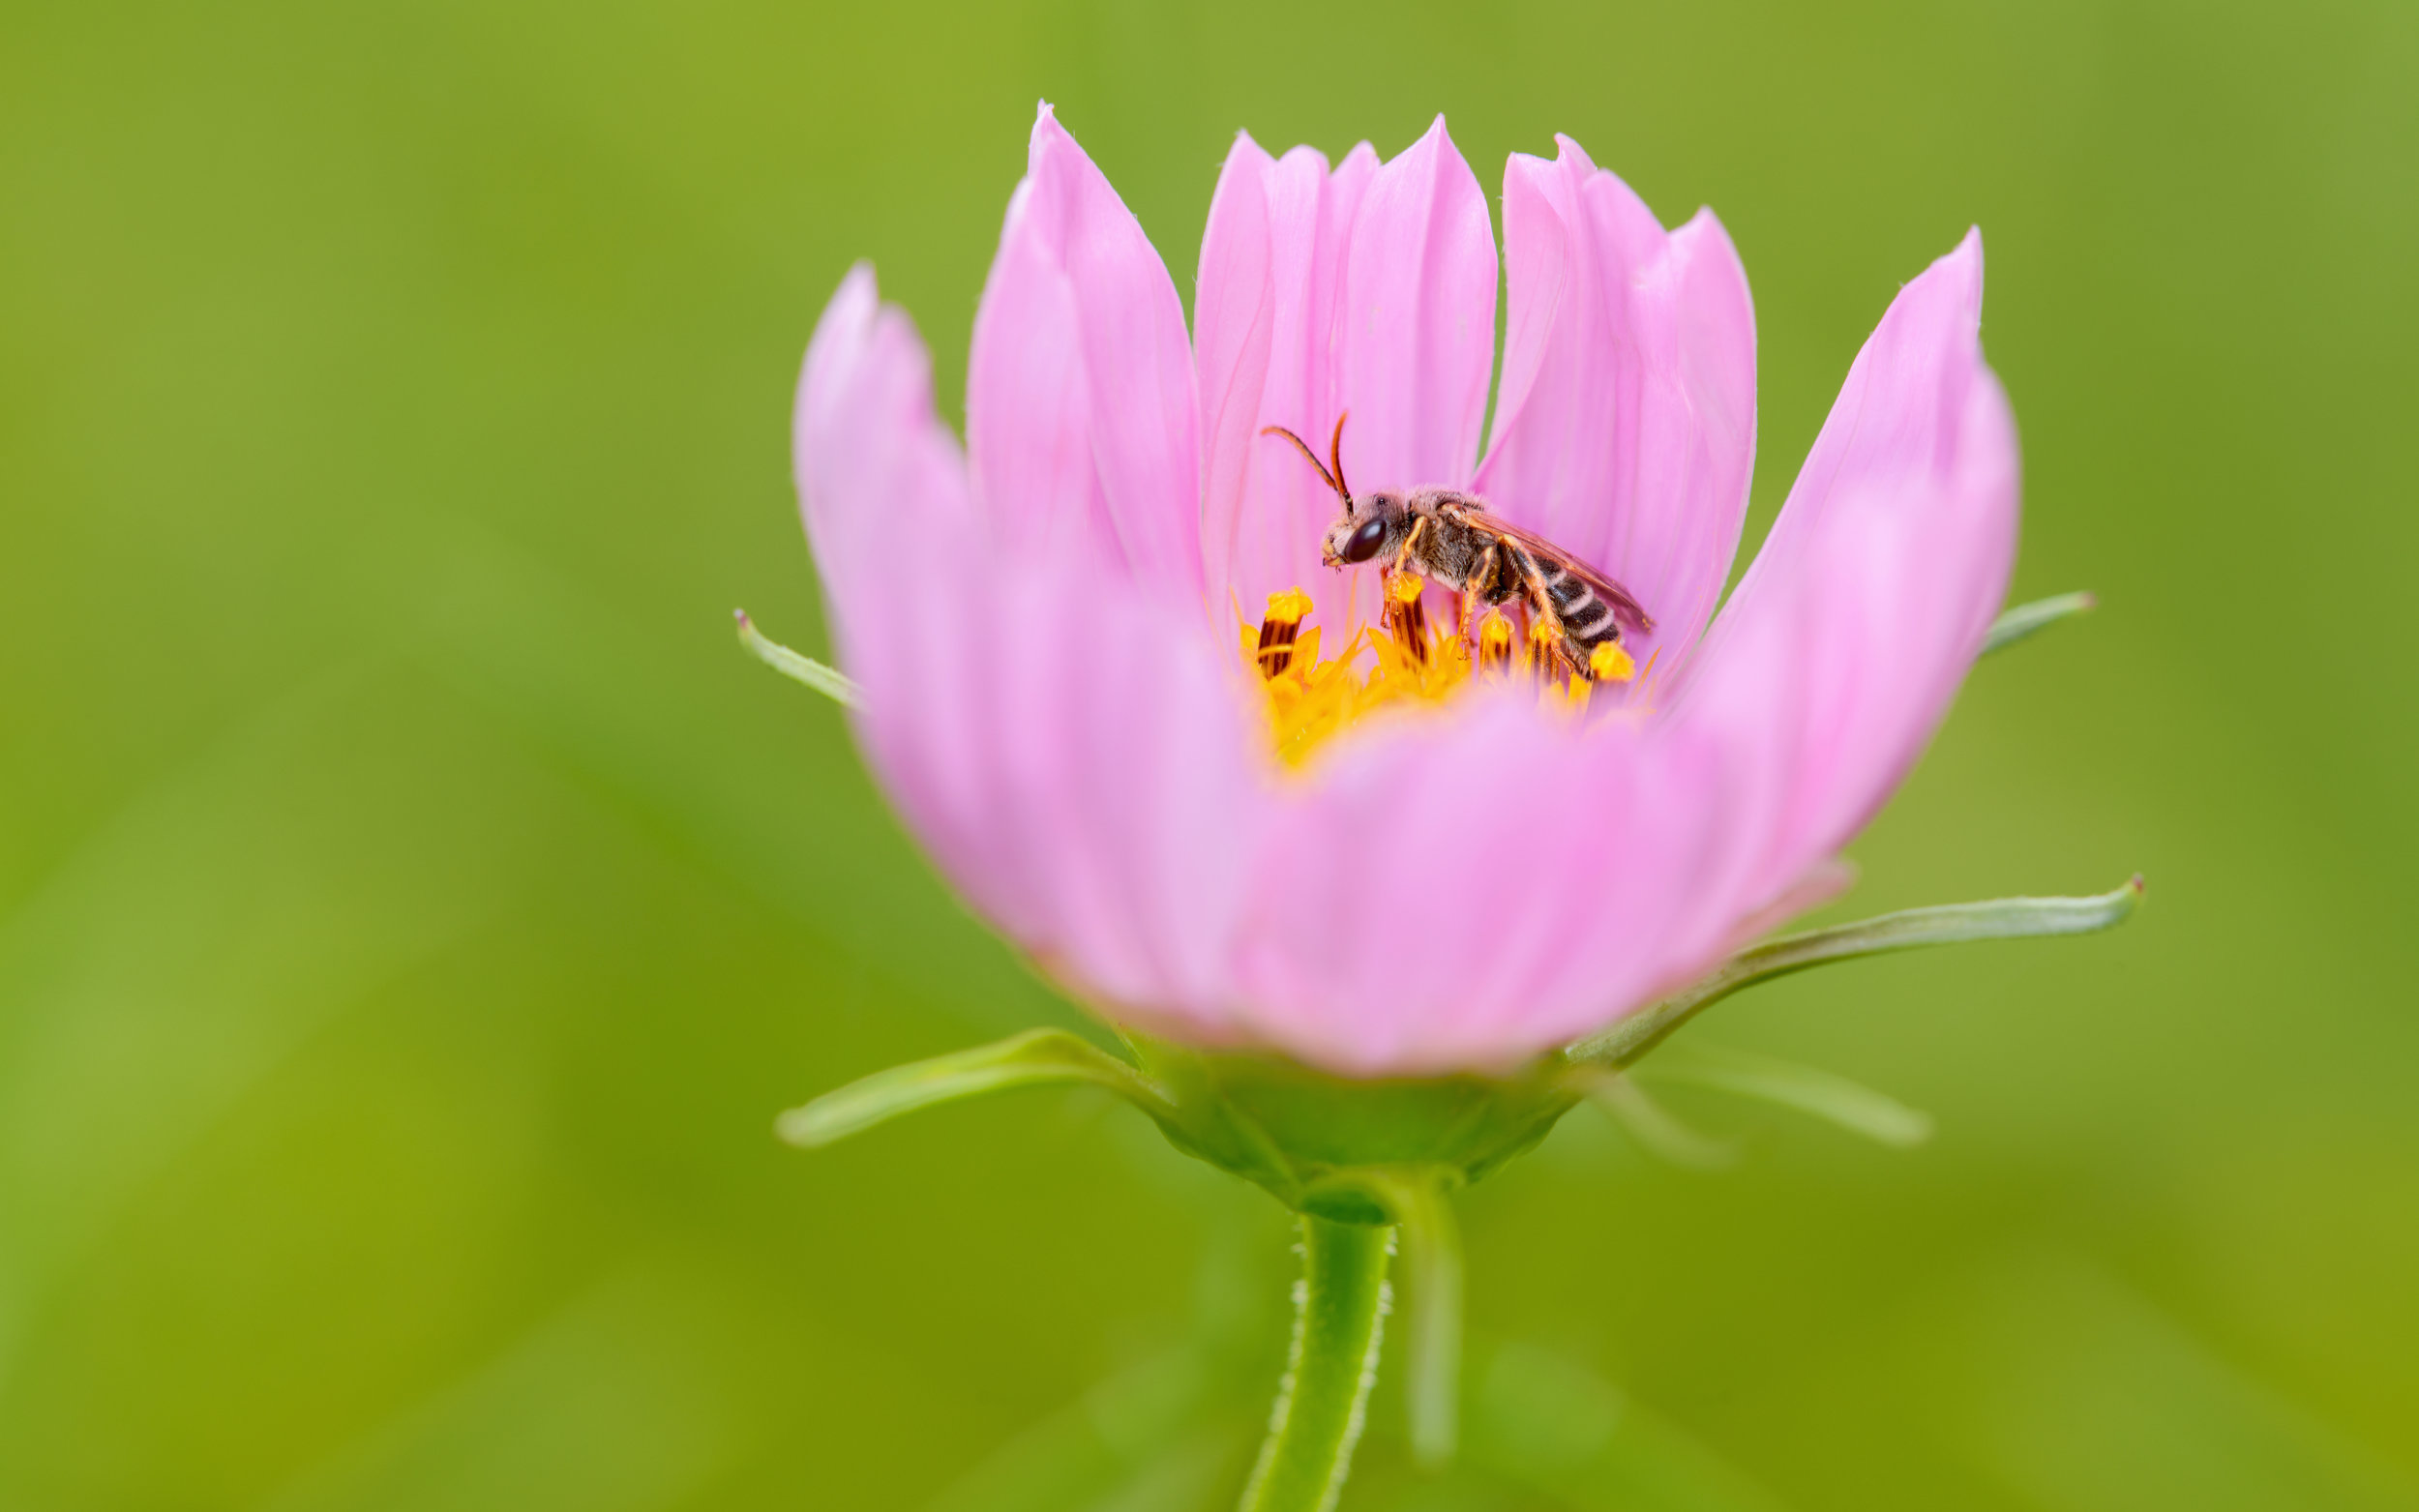 Native Bee Resting on Pink Cosmos Flower